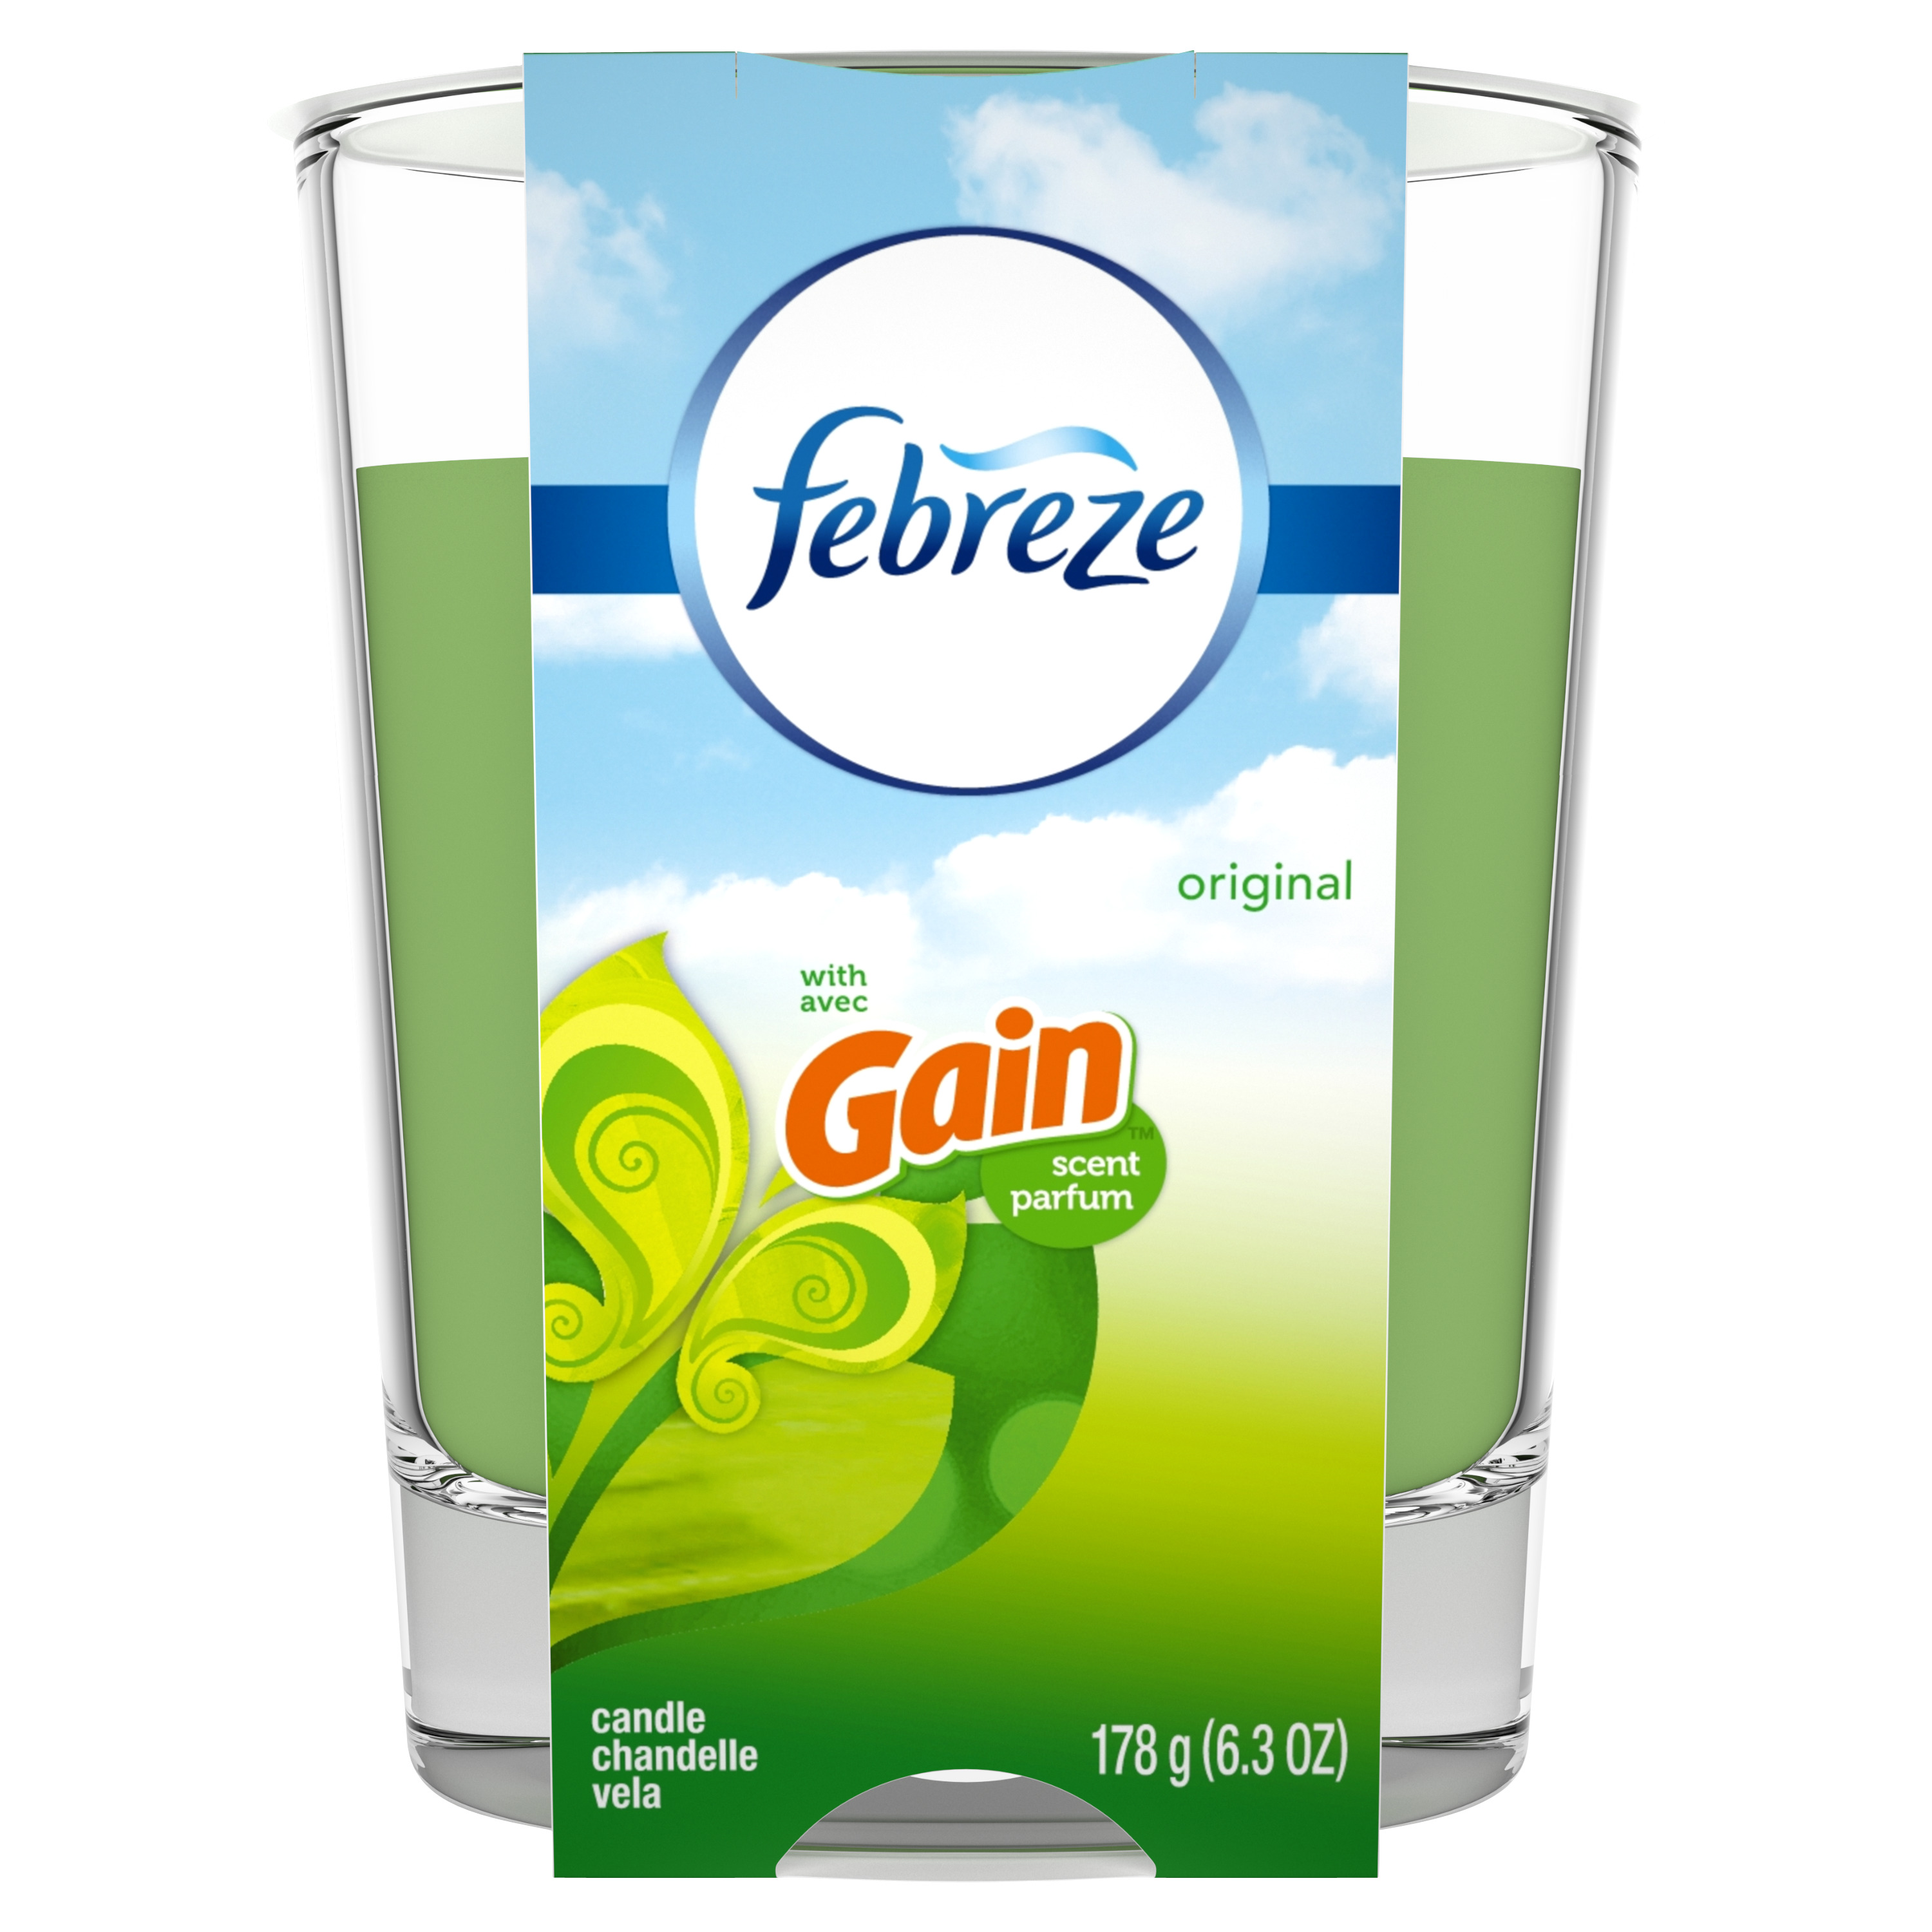 Febreze Candle with Gain Scent, Original, 6.3 oz